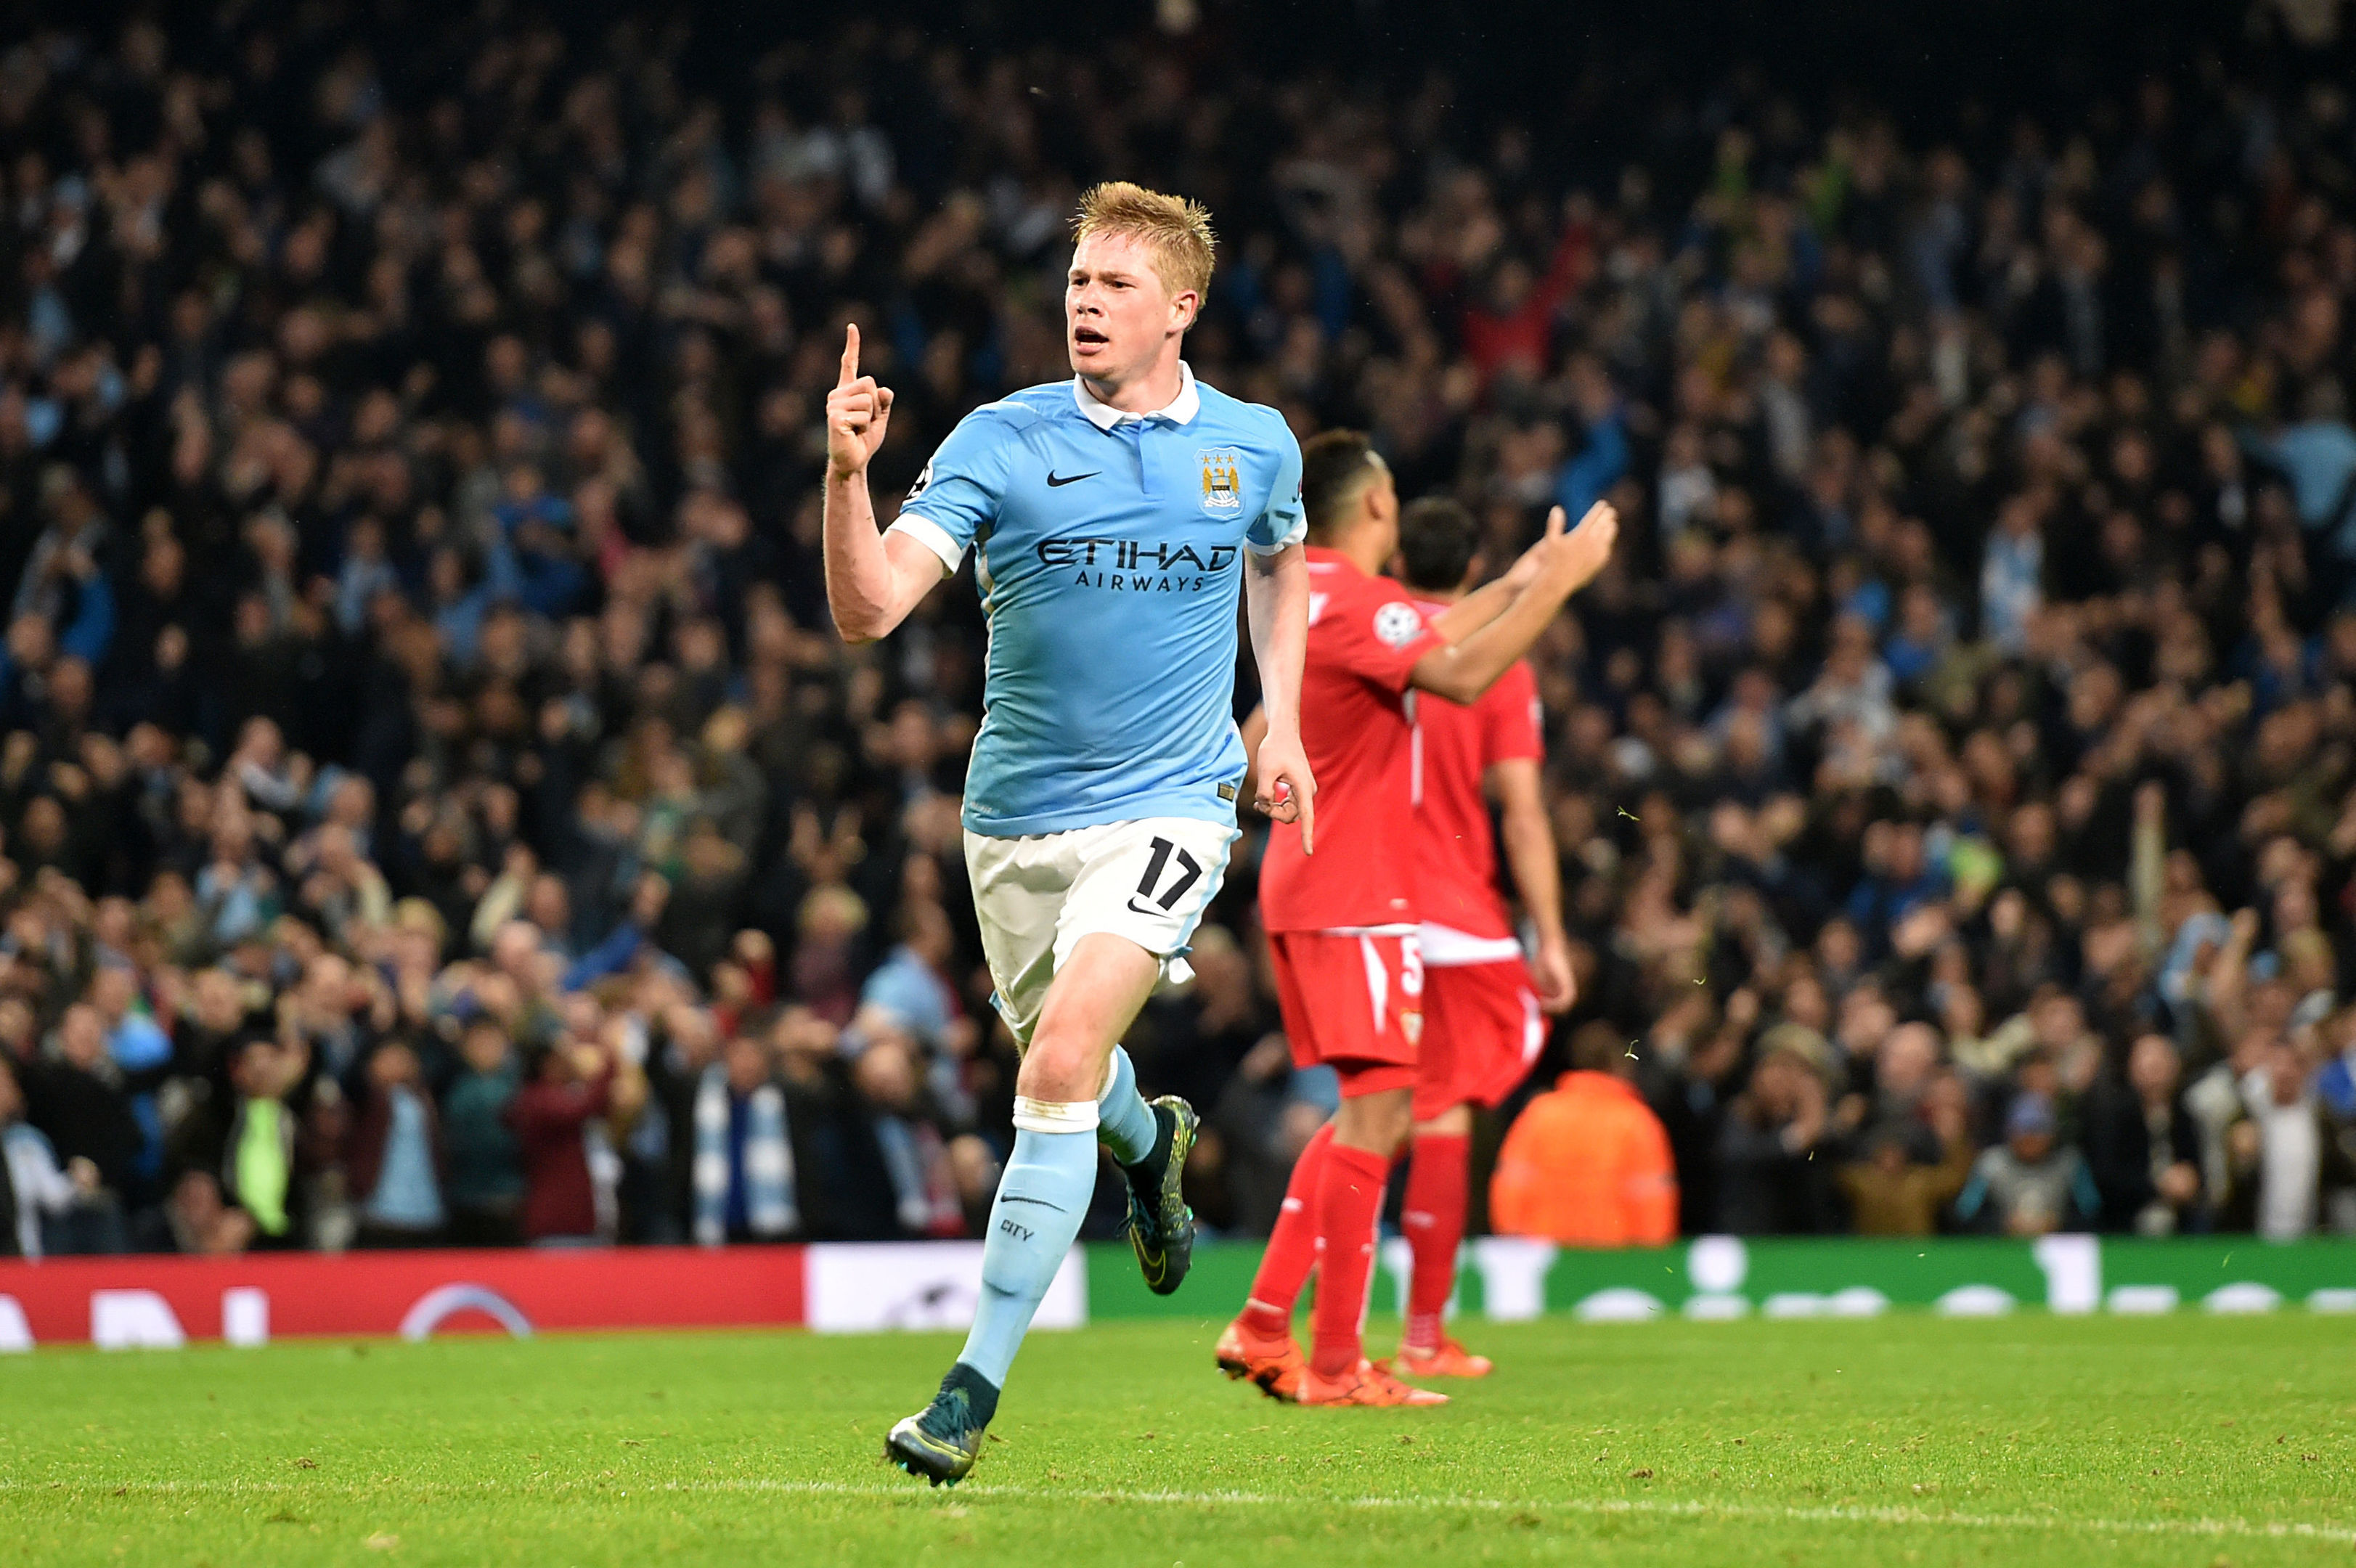 De Bruyne netted City's winner (Martin Rickett/PA Wire)